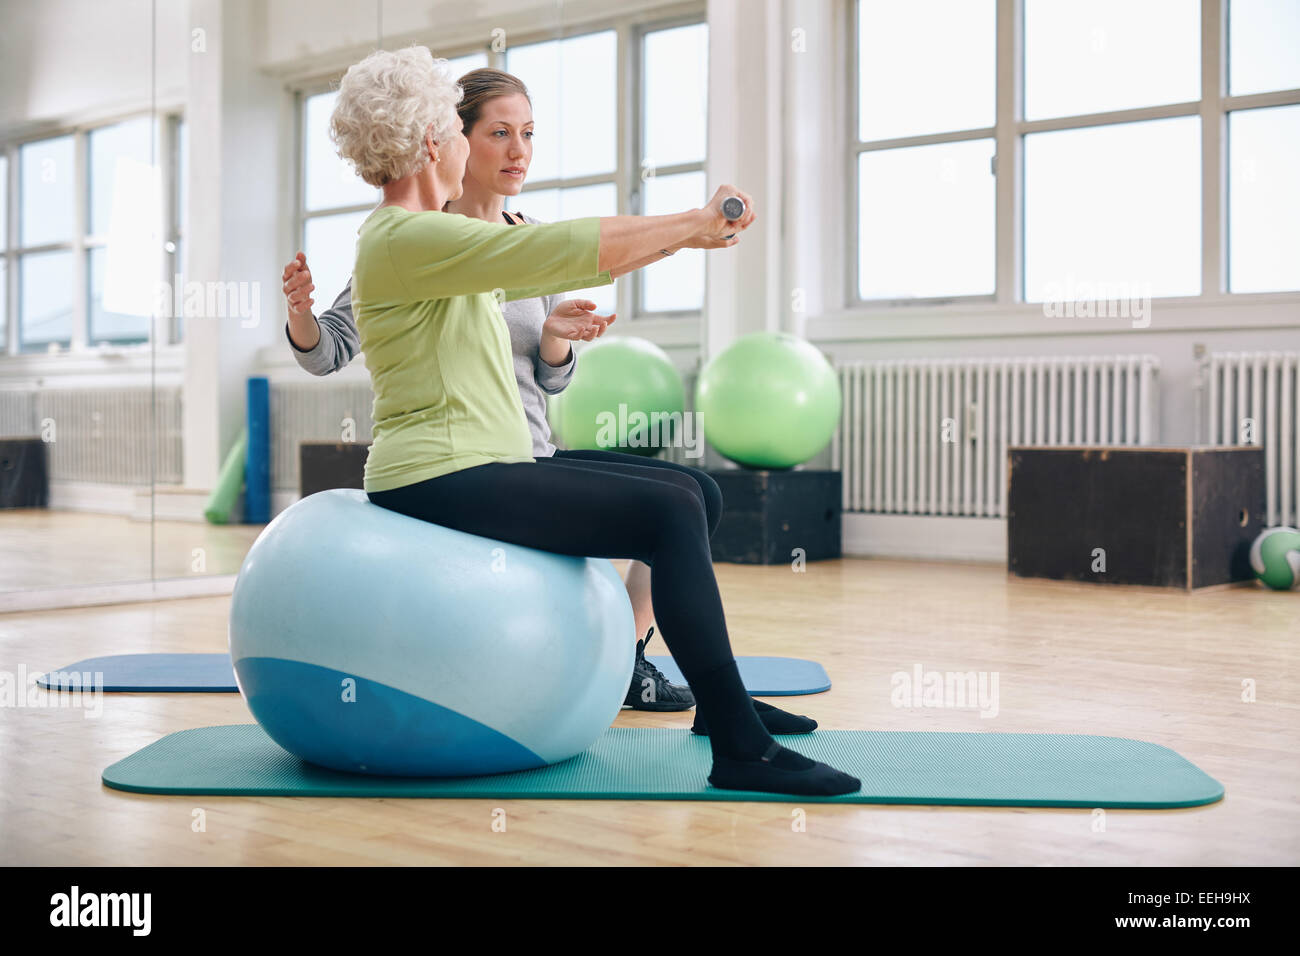 Formateur d'aider les femmes woman lifting weights in gym. Senior woman sitting on balle Pilates poids faisant Photo Stock